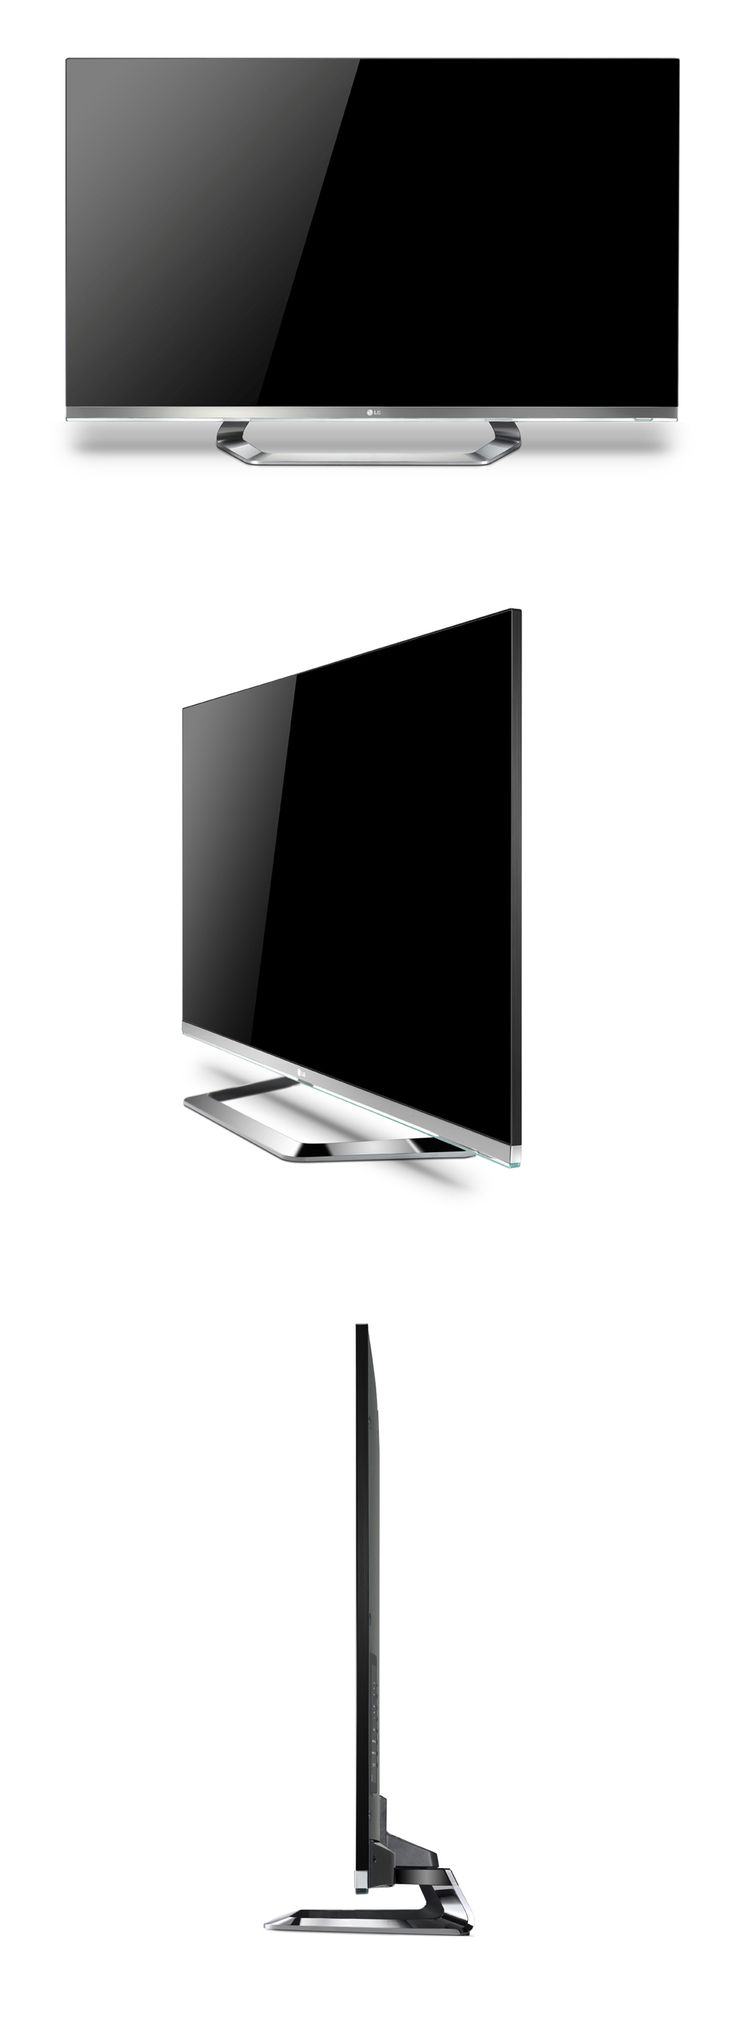 LG's Cinema Screen TVs are incredibly thin and have an ultra narrow bezel. You're judging your own TV now, aren't you?